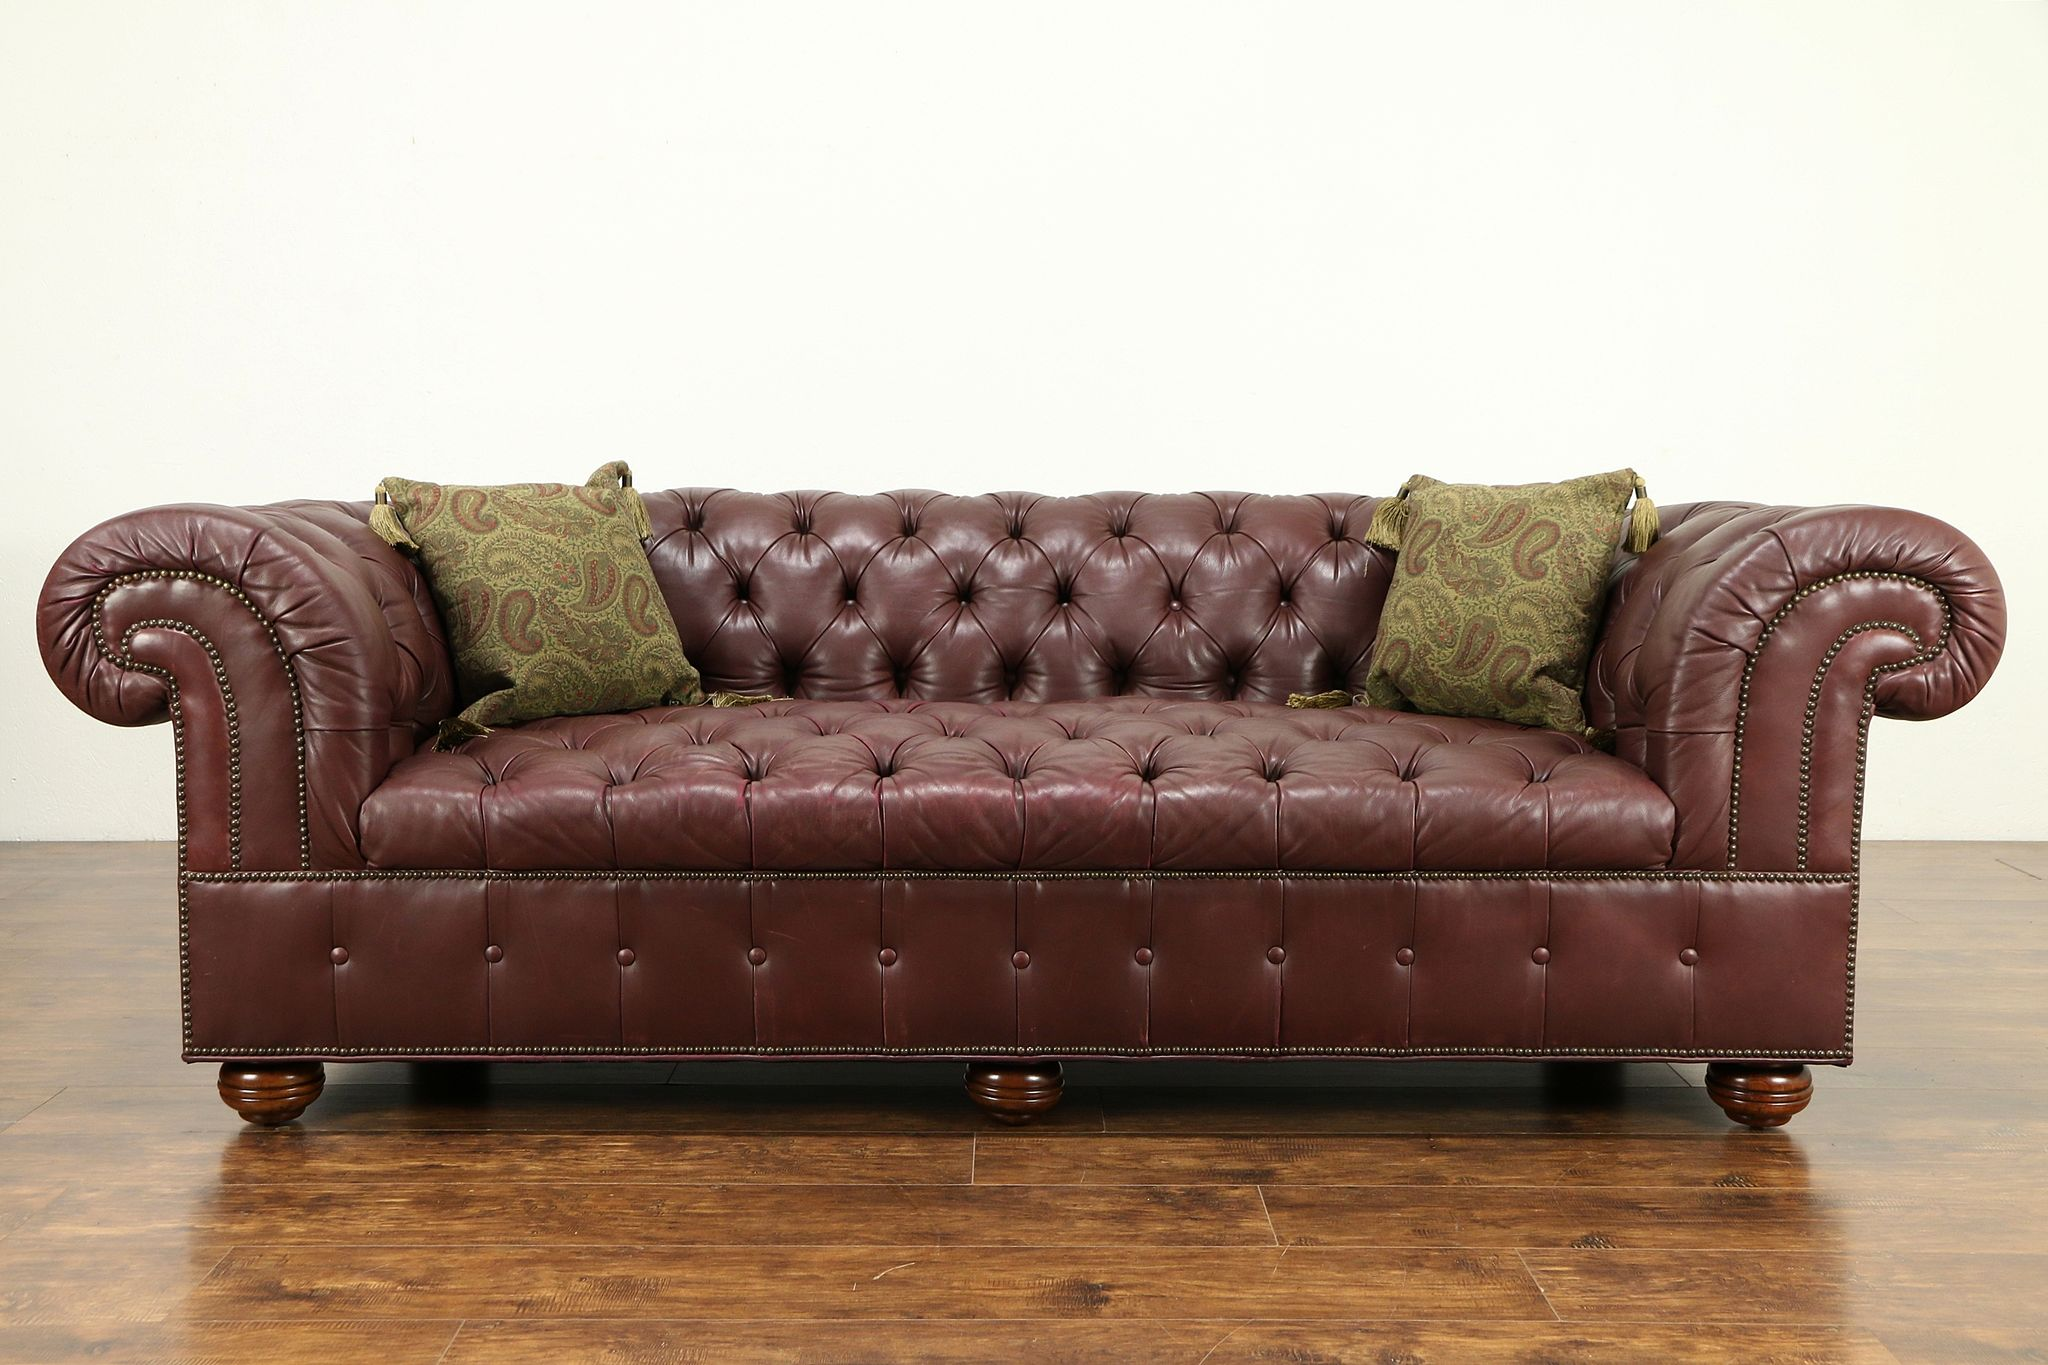 Chesterfield Tufted Leather Vintage Sofa Br Nailhead Trim 31173